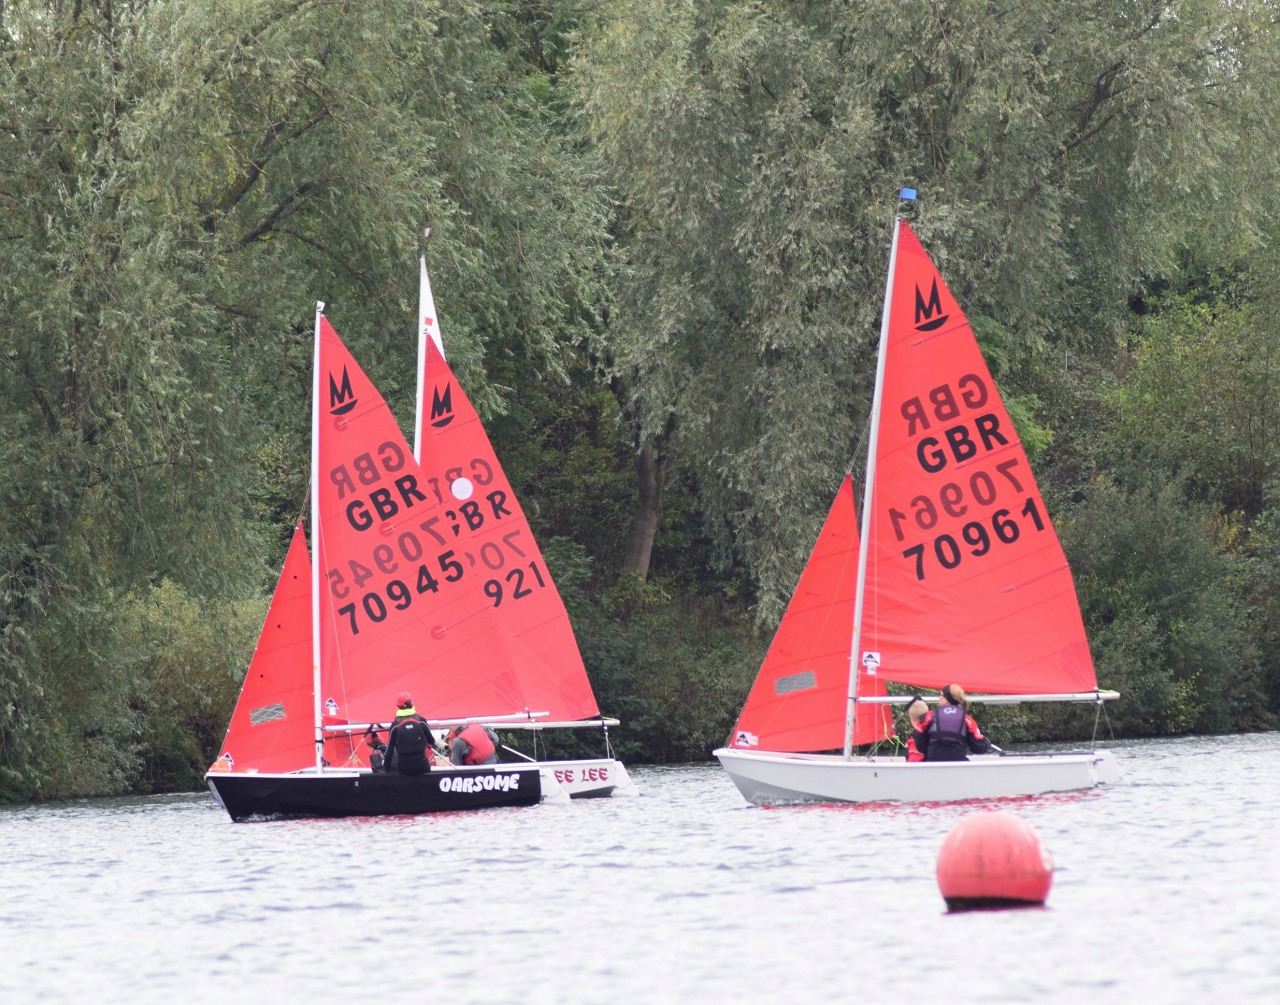 Mirror dinghies racing upwind on a lake with trees in the background